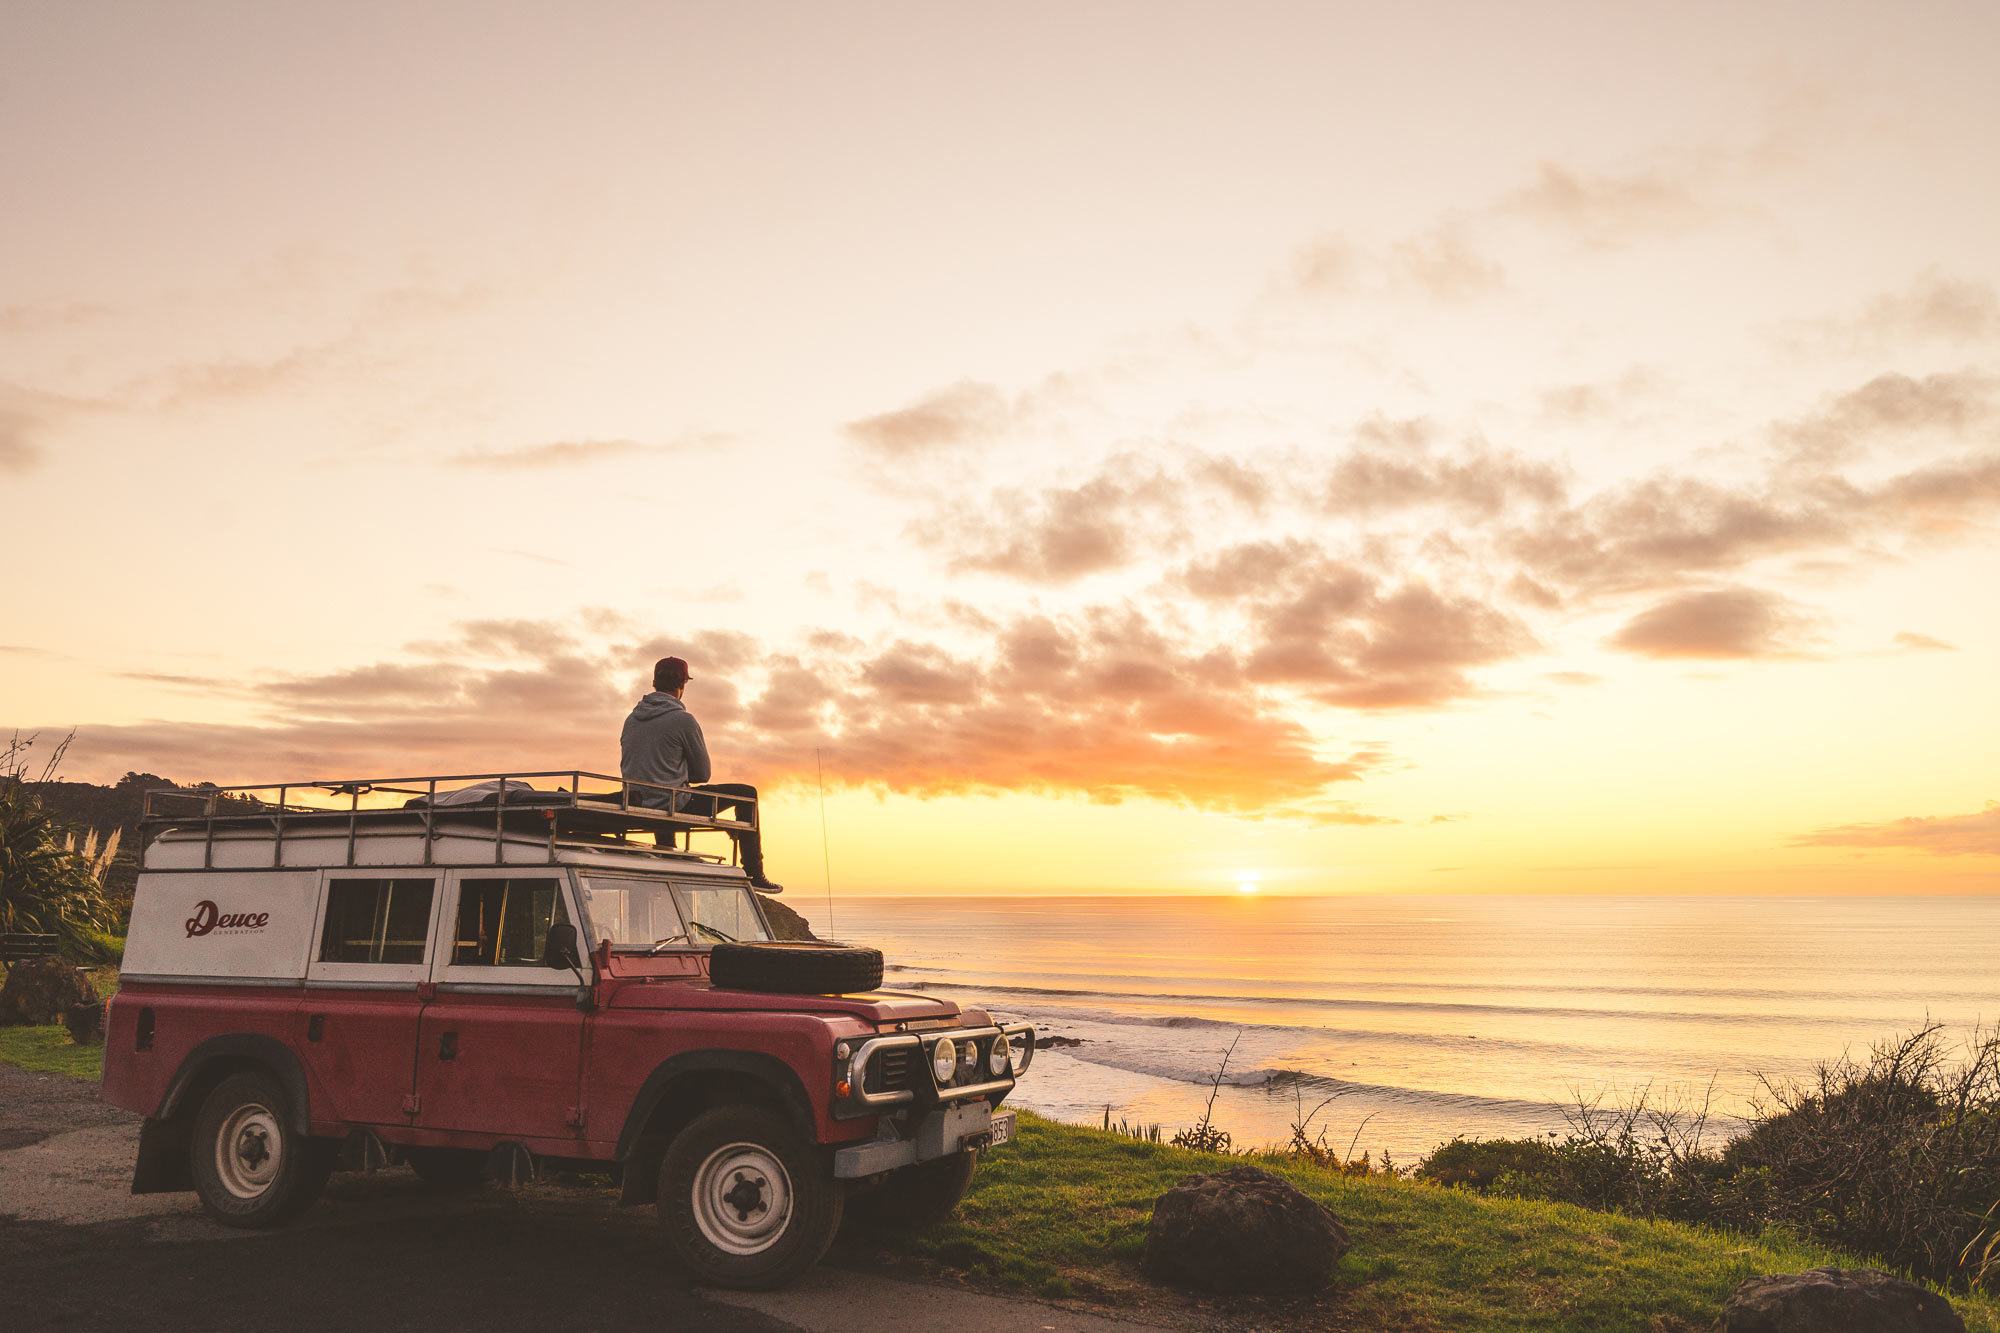 Sitting on top of the Deuce Sneakers Land Rover looking at the surf in Raglan, NZ